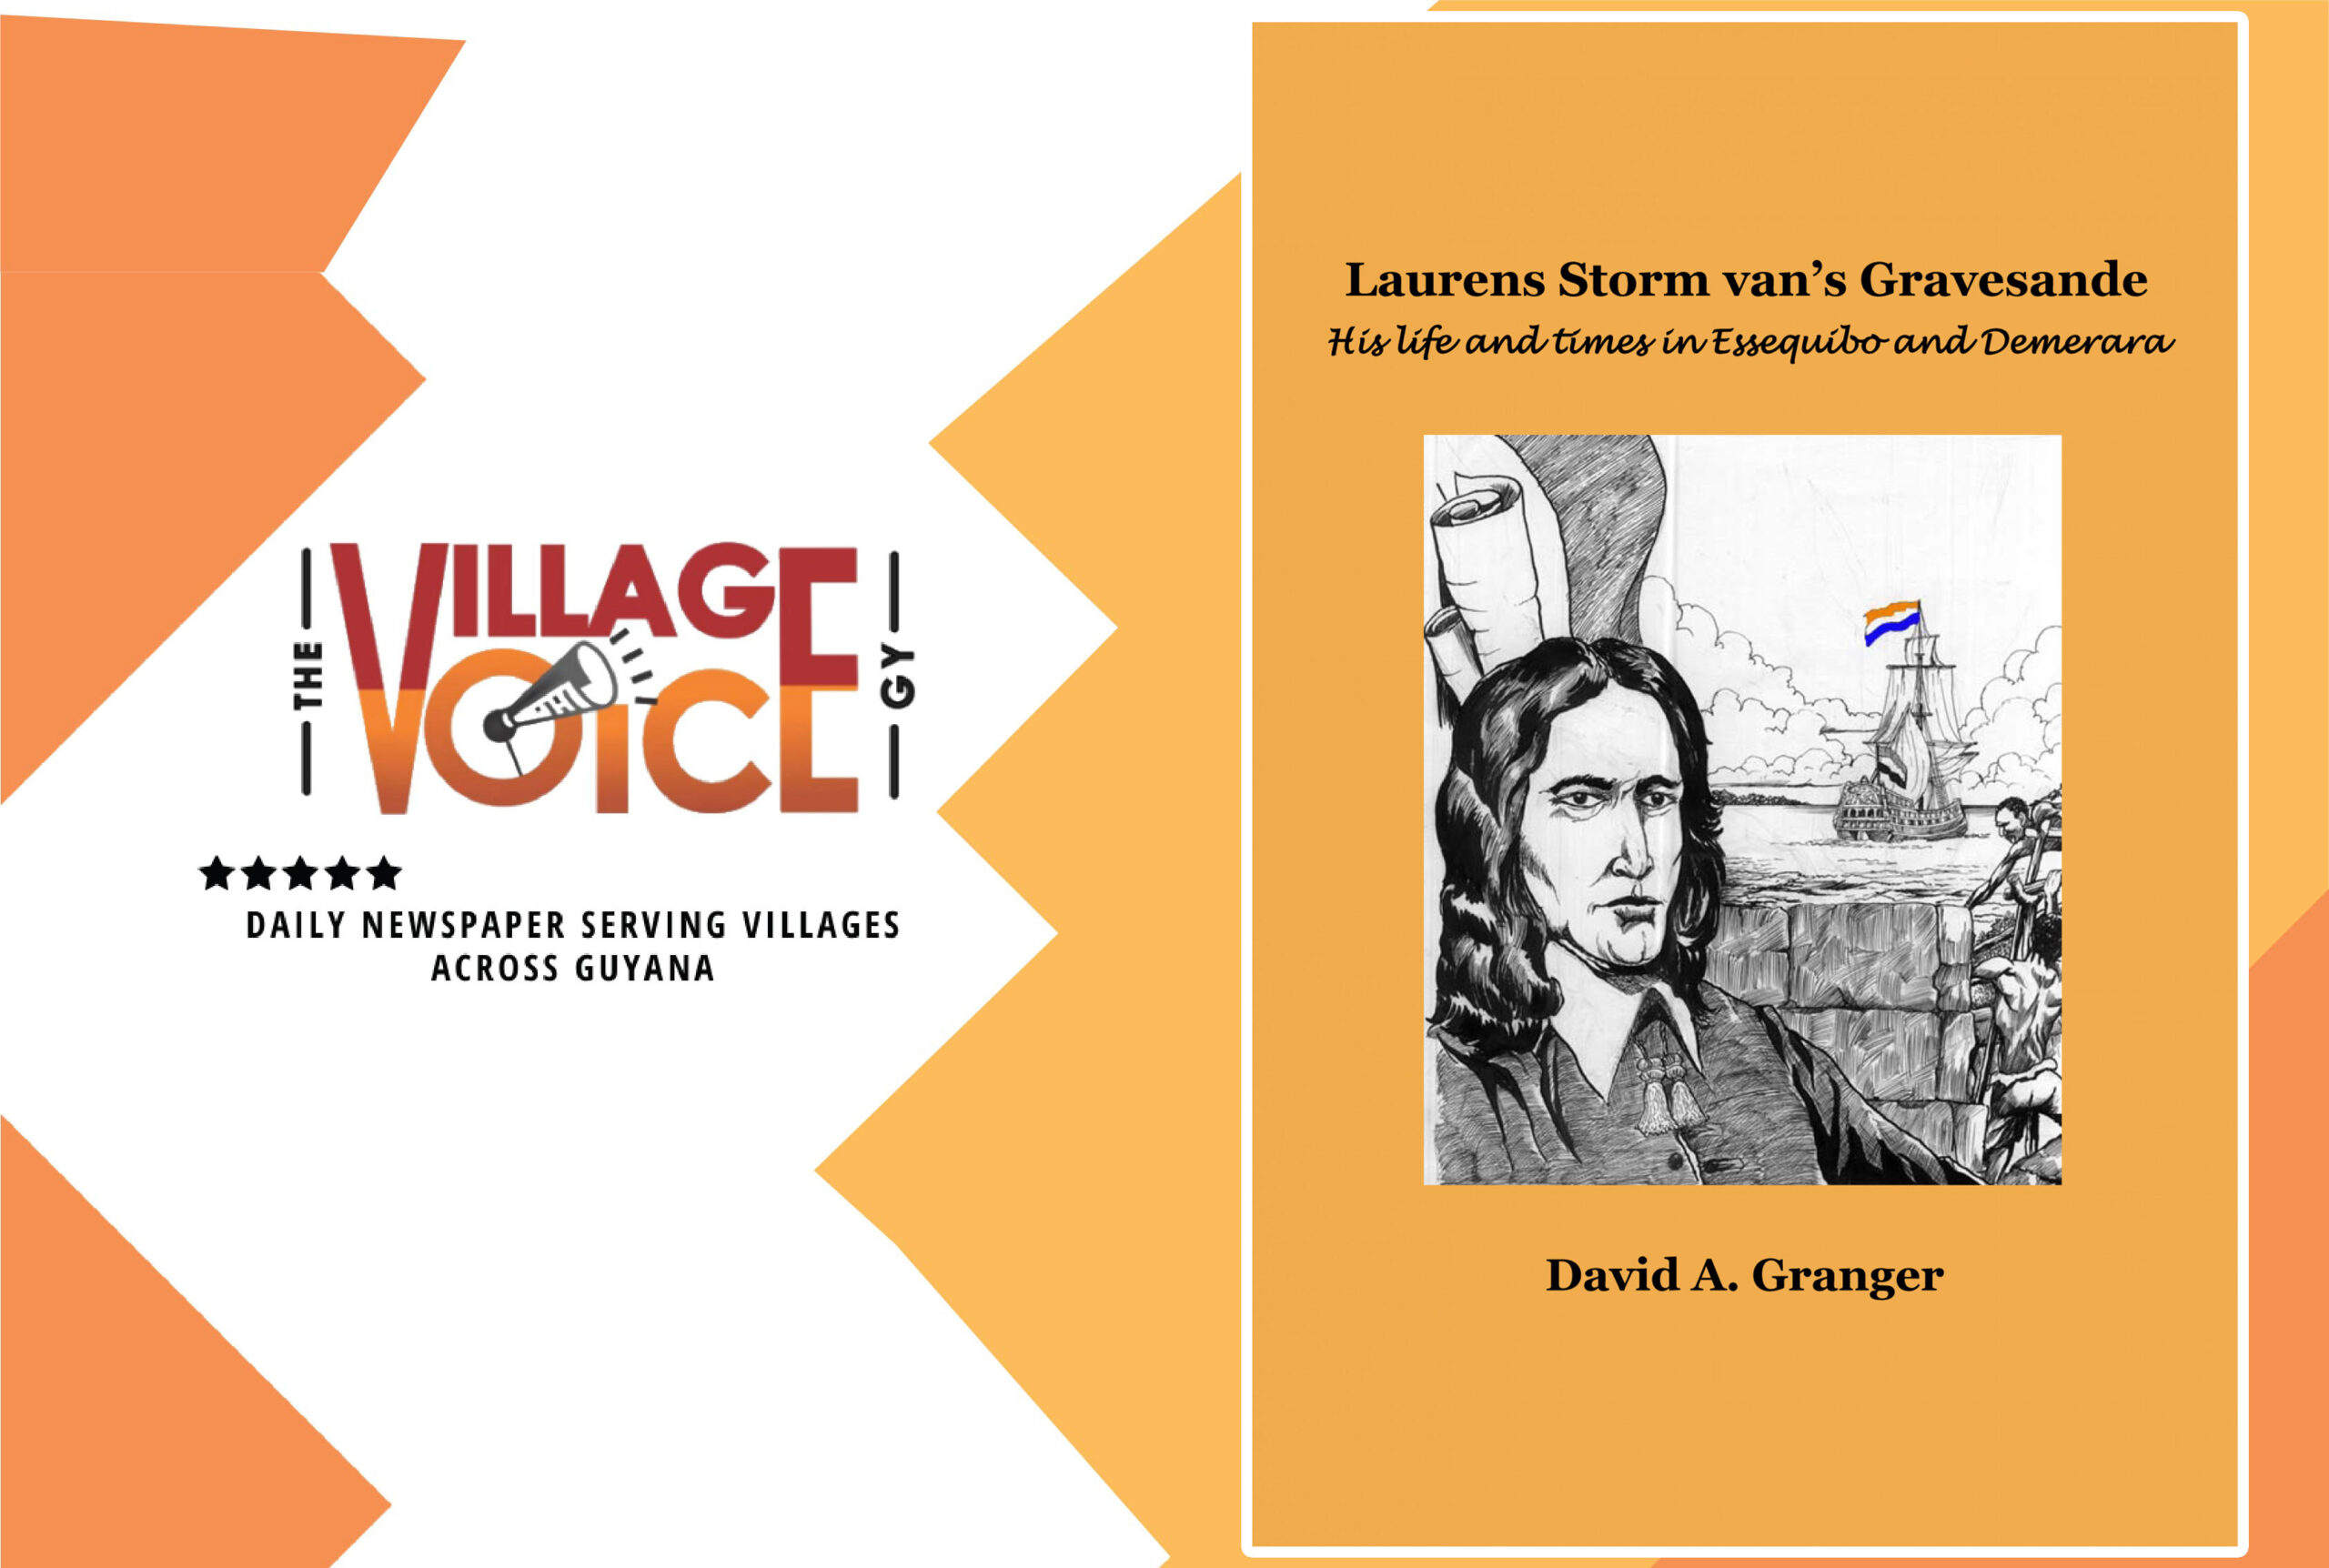 A Review of David Granger's Laurens Storm van's Gravesande: His life and times in Essequibo and Demerara